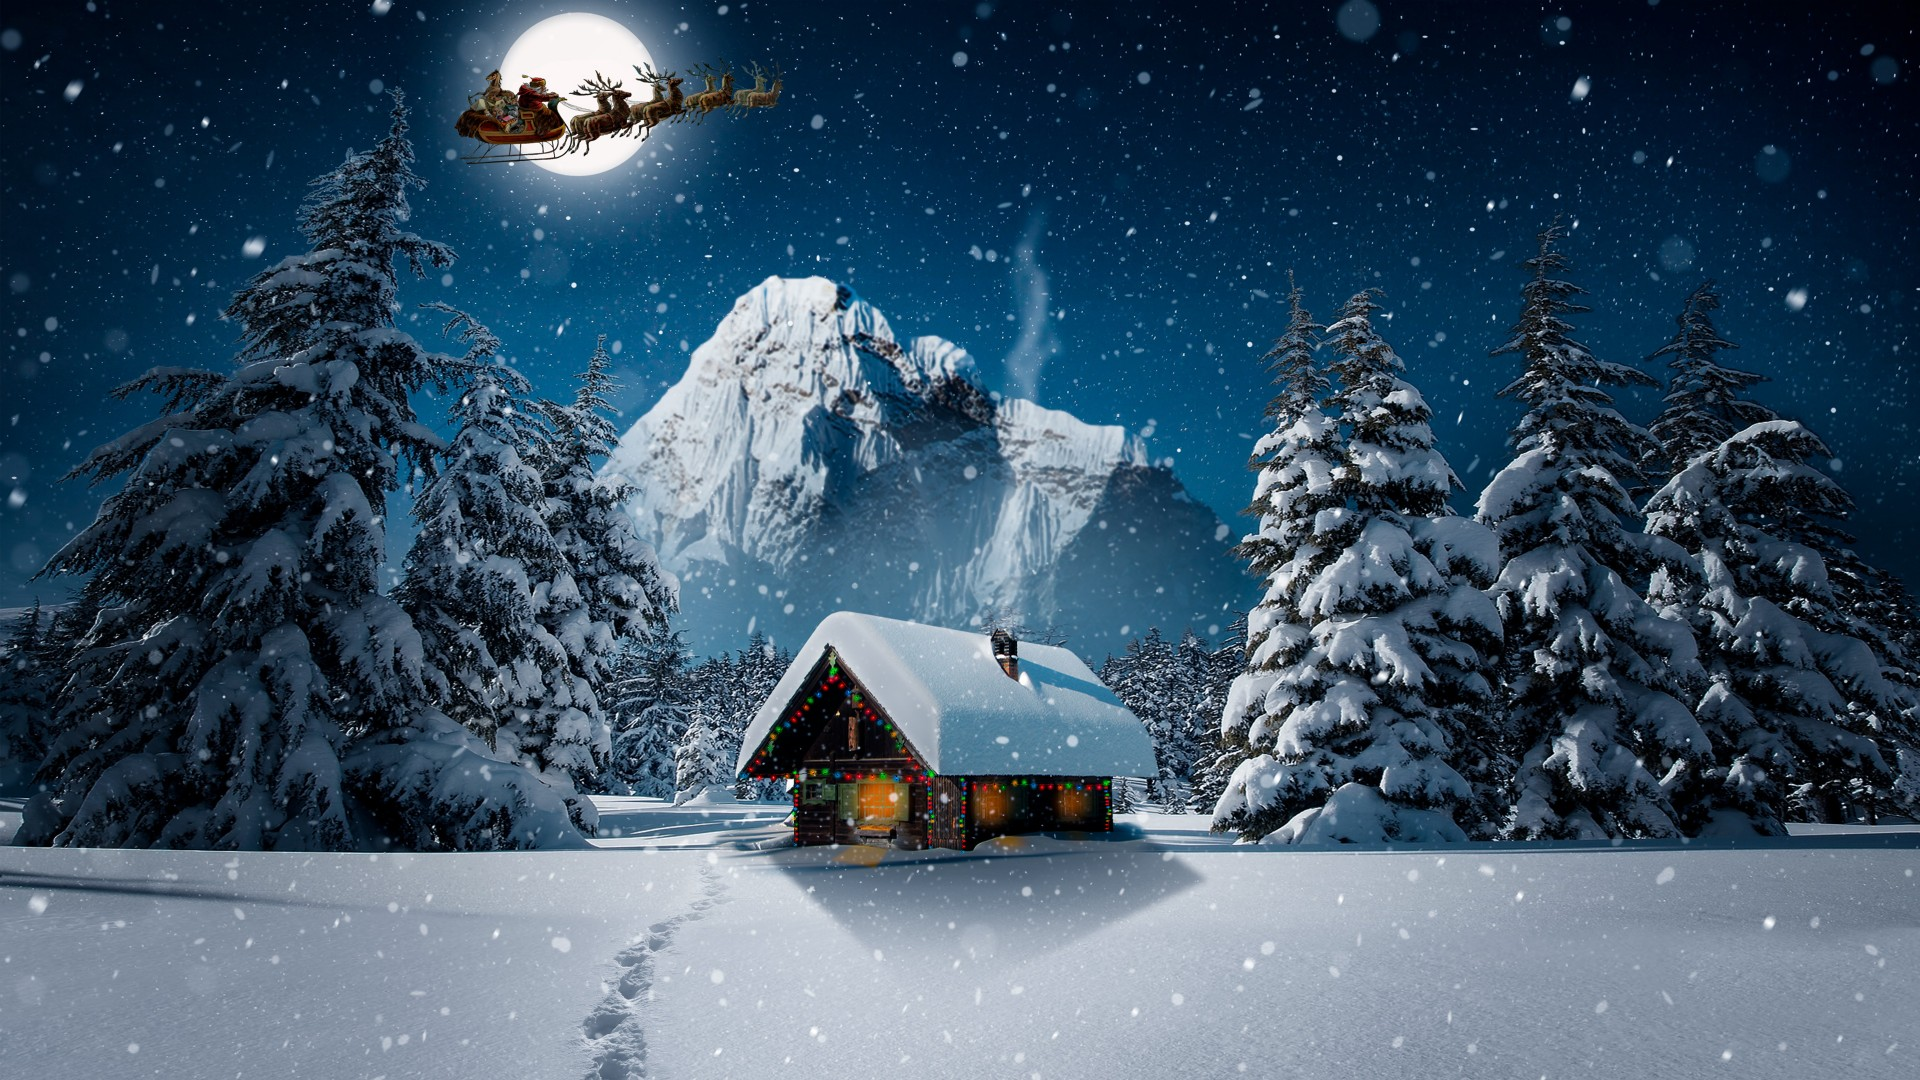 Hd Widescreen Christmas Desktop Wallpaper Christmas Winter 4k Wallpapers Hd Wallpapers Id 27069